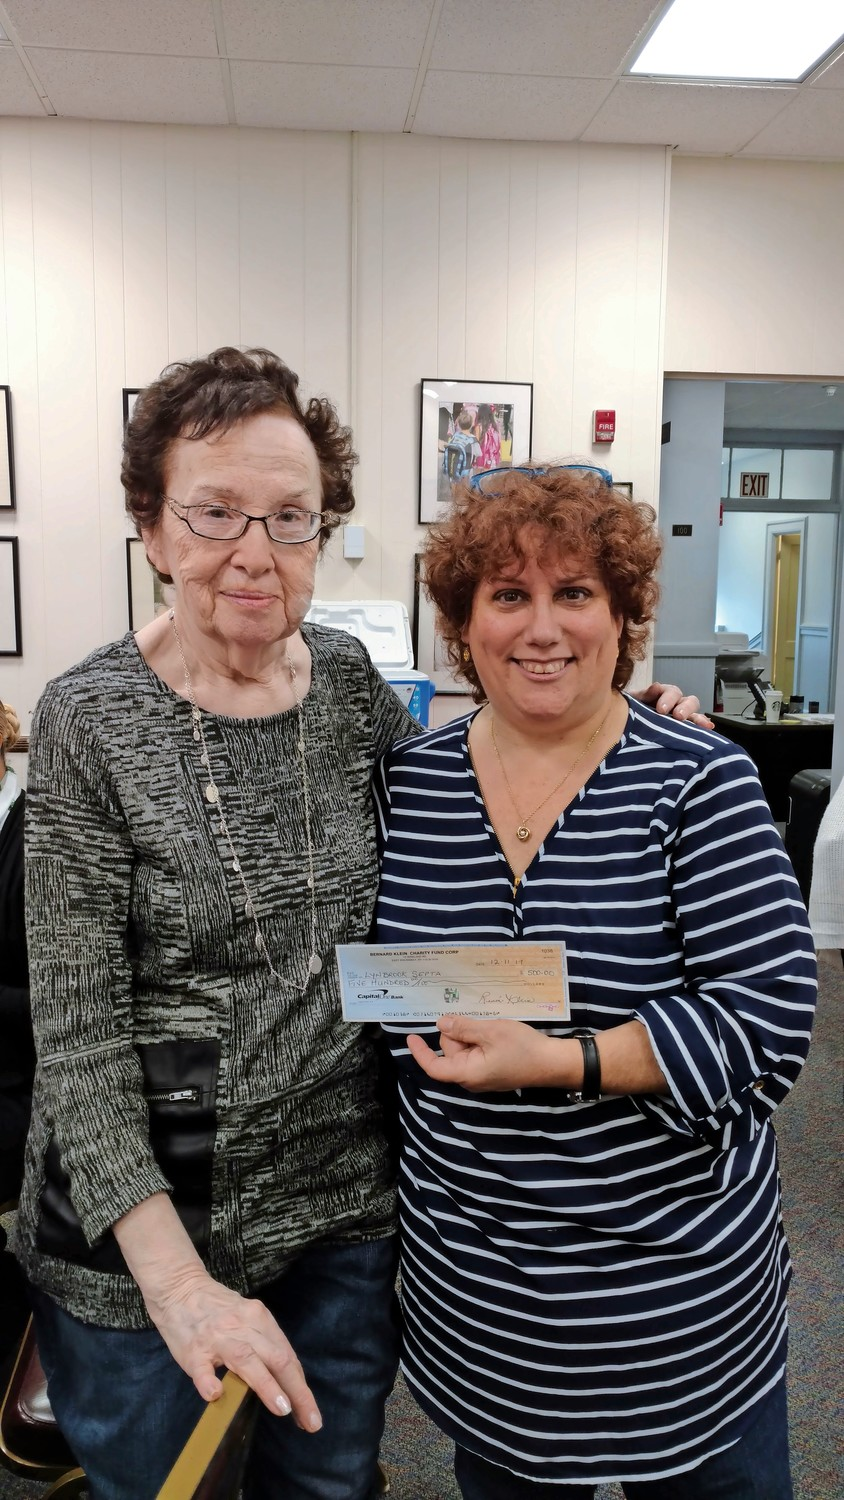 Mindy Ross-Knaster, right, said that Klein stepped in to help her after her mother died eight years ago, and recently donated $500 to the Lynbrook Special Education PTA, of which Ross-Knaster is  a member.